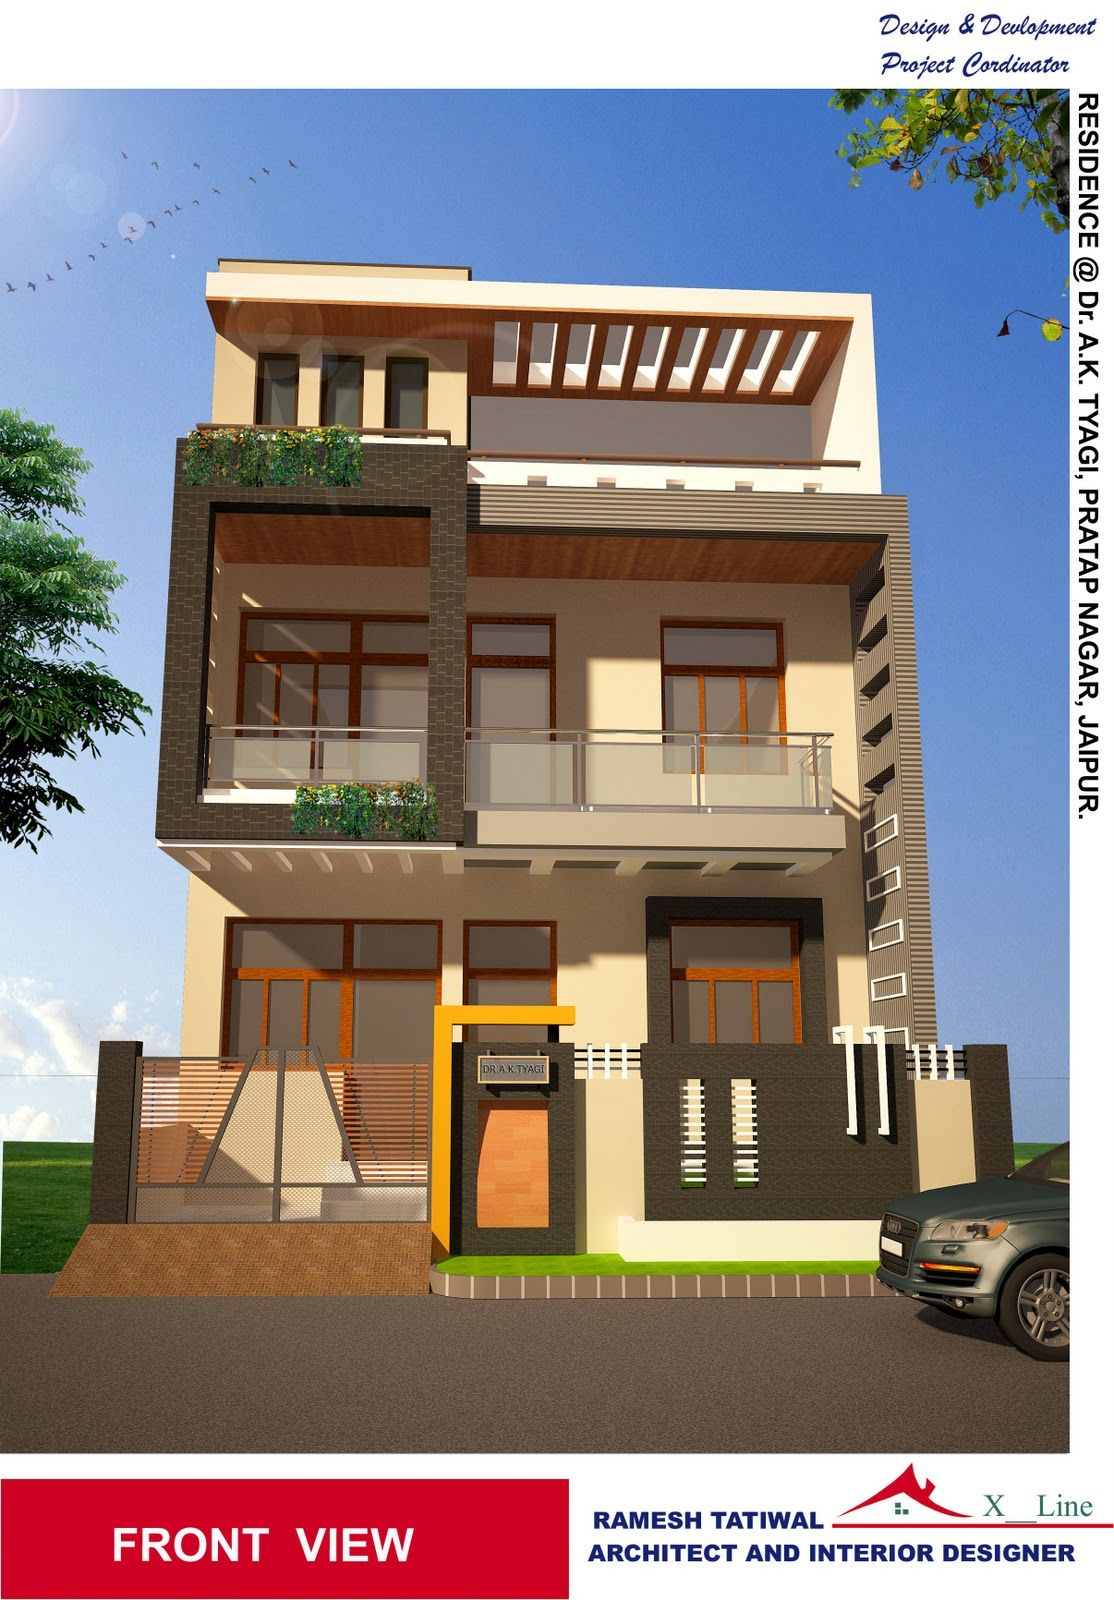 Housedesigns modern indian home architecture design from for Home design picture gallery